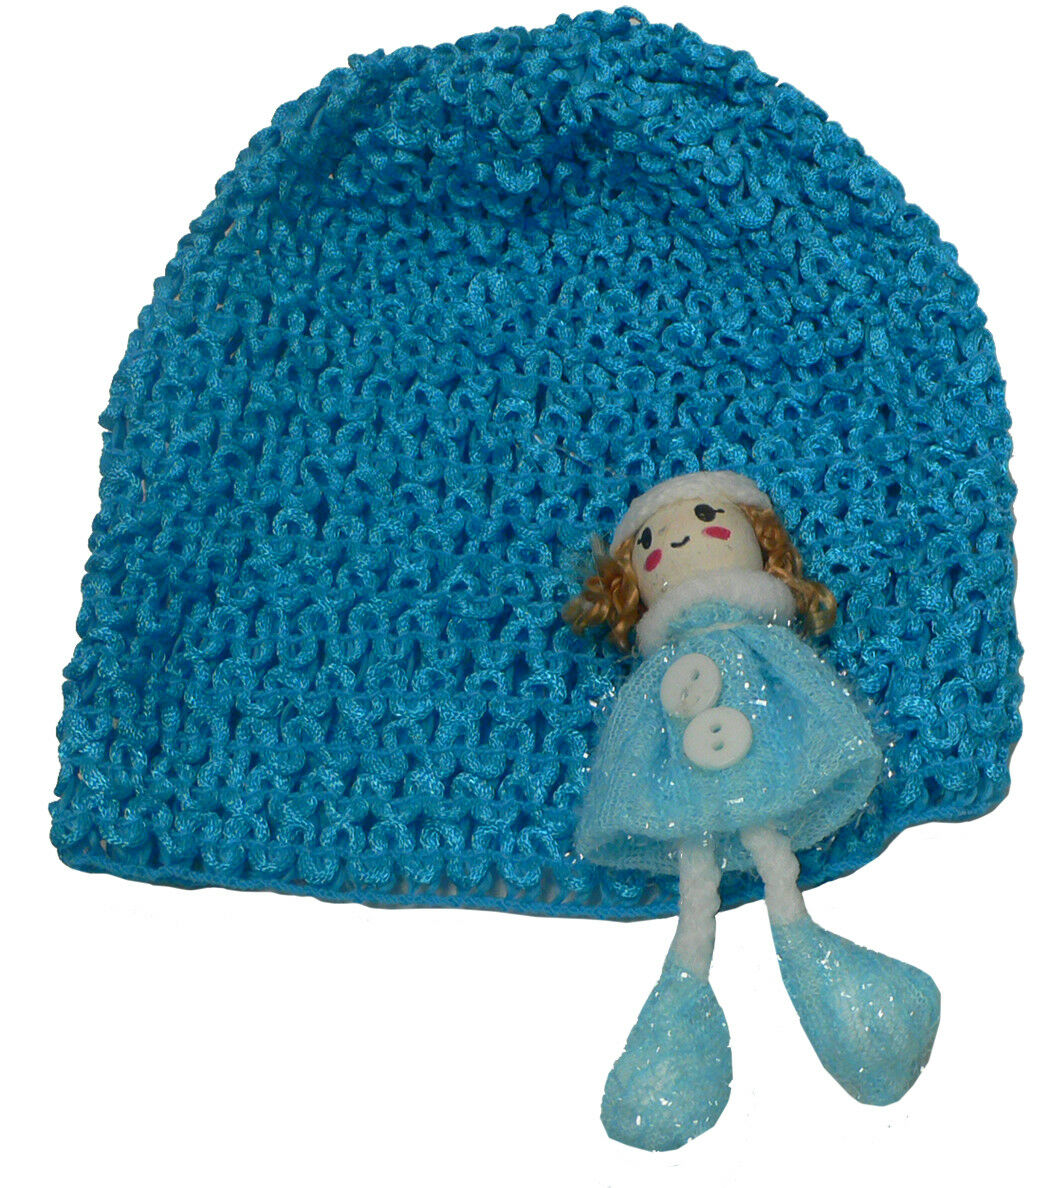 lla Toddler/'s Stretchy Knitted Bonnet Hat with Sweetheart Aplique U16250-6411